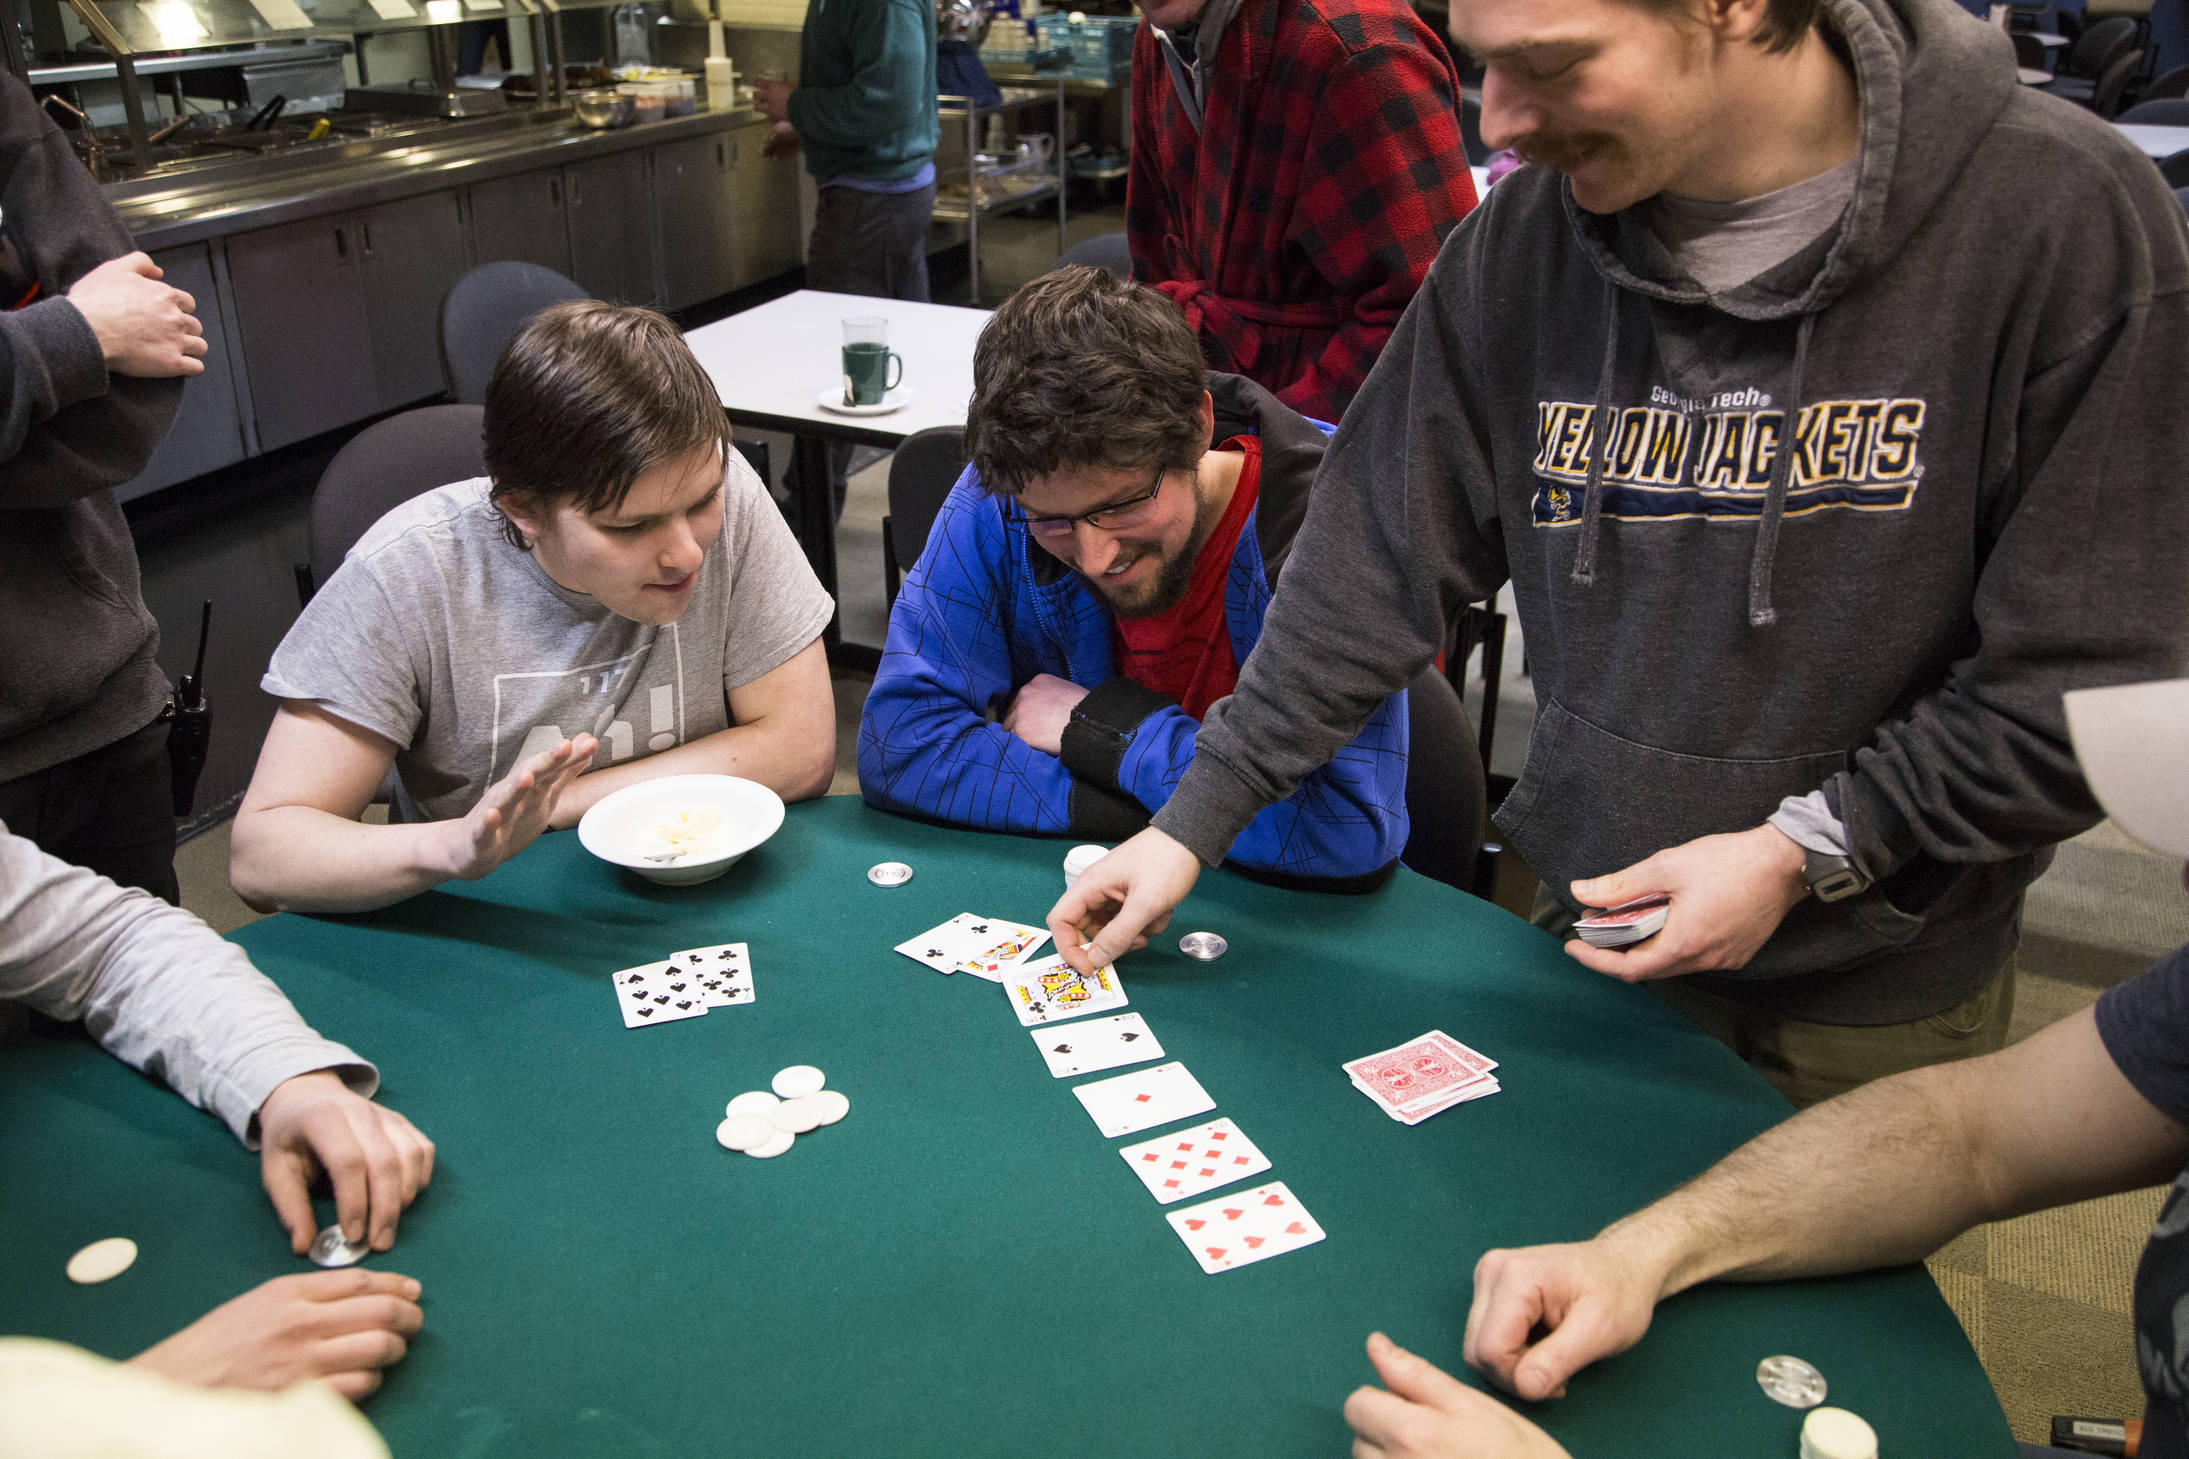 idwinter poker tournament (Photo: Gavin Chensue).